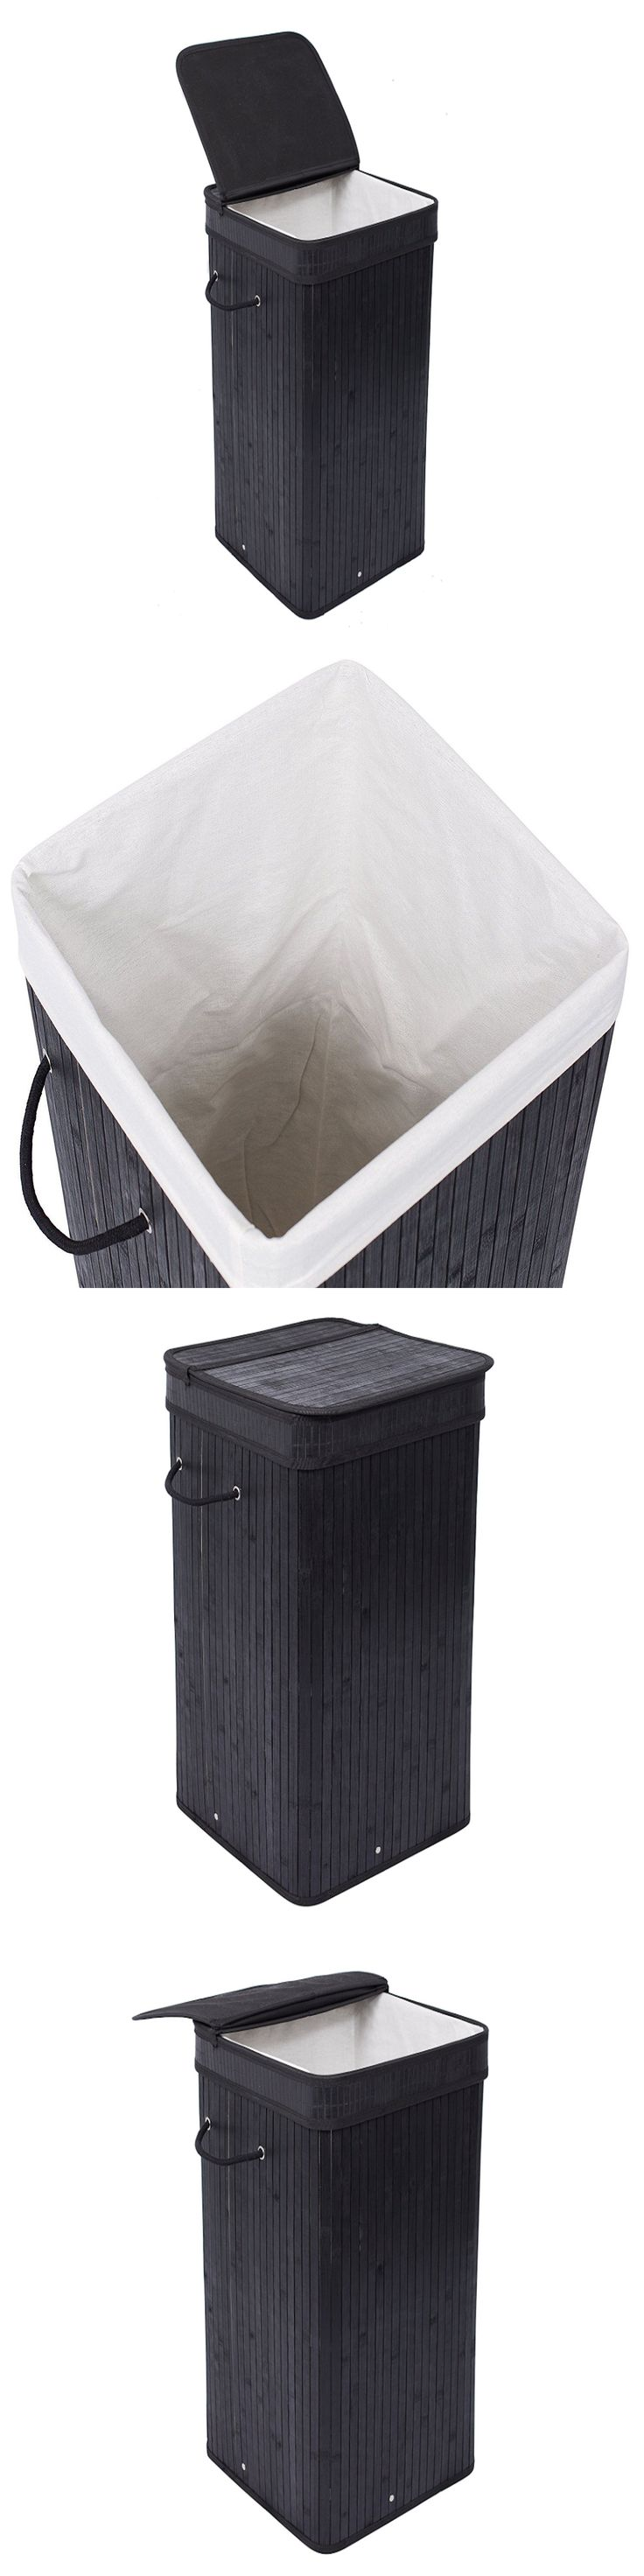 White tilt out clothes storage basket bin bathroom drawer ebay - Hampers 43517 Foldable Laundry Sorter Hamper Clothes Storage Basket Bin Organizer Washing Bag